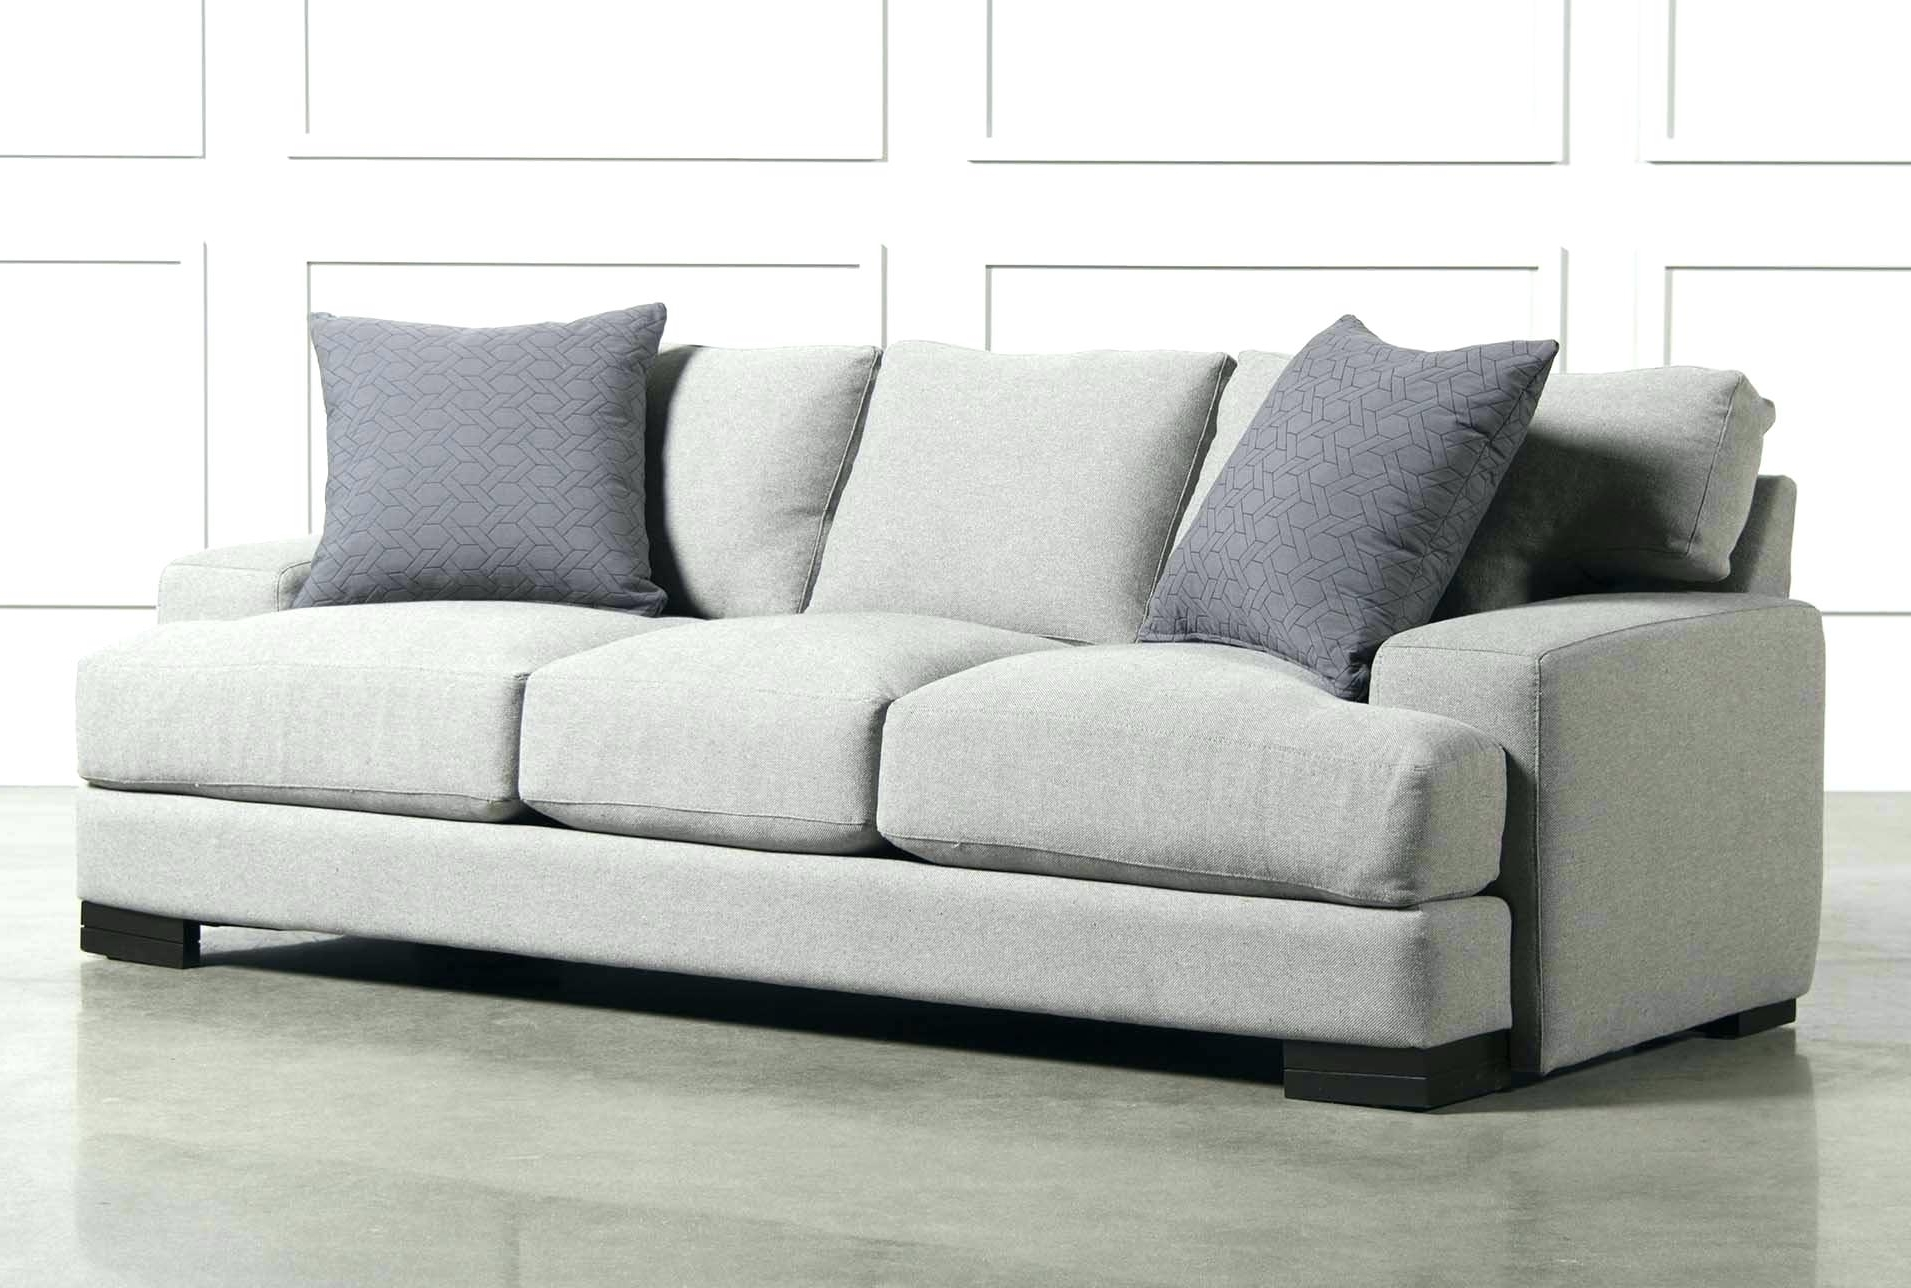 Closeout Sofas With Newest Couches On Clearance Sadining Sa Leather Closeout Sofas Calgary (View 15 of 15)